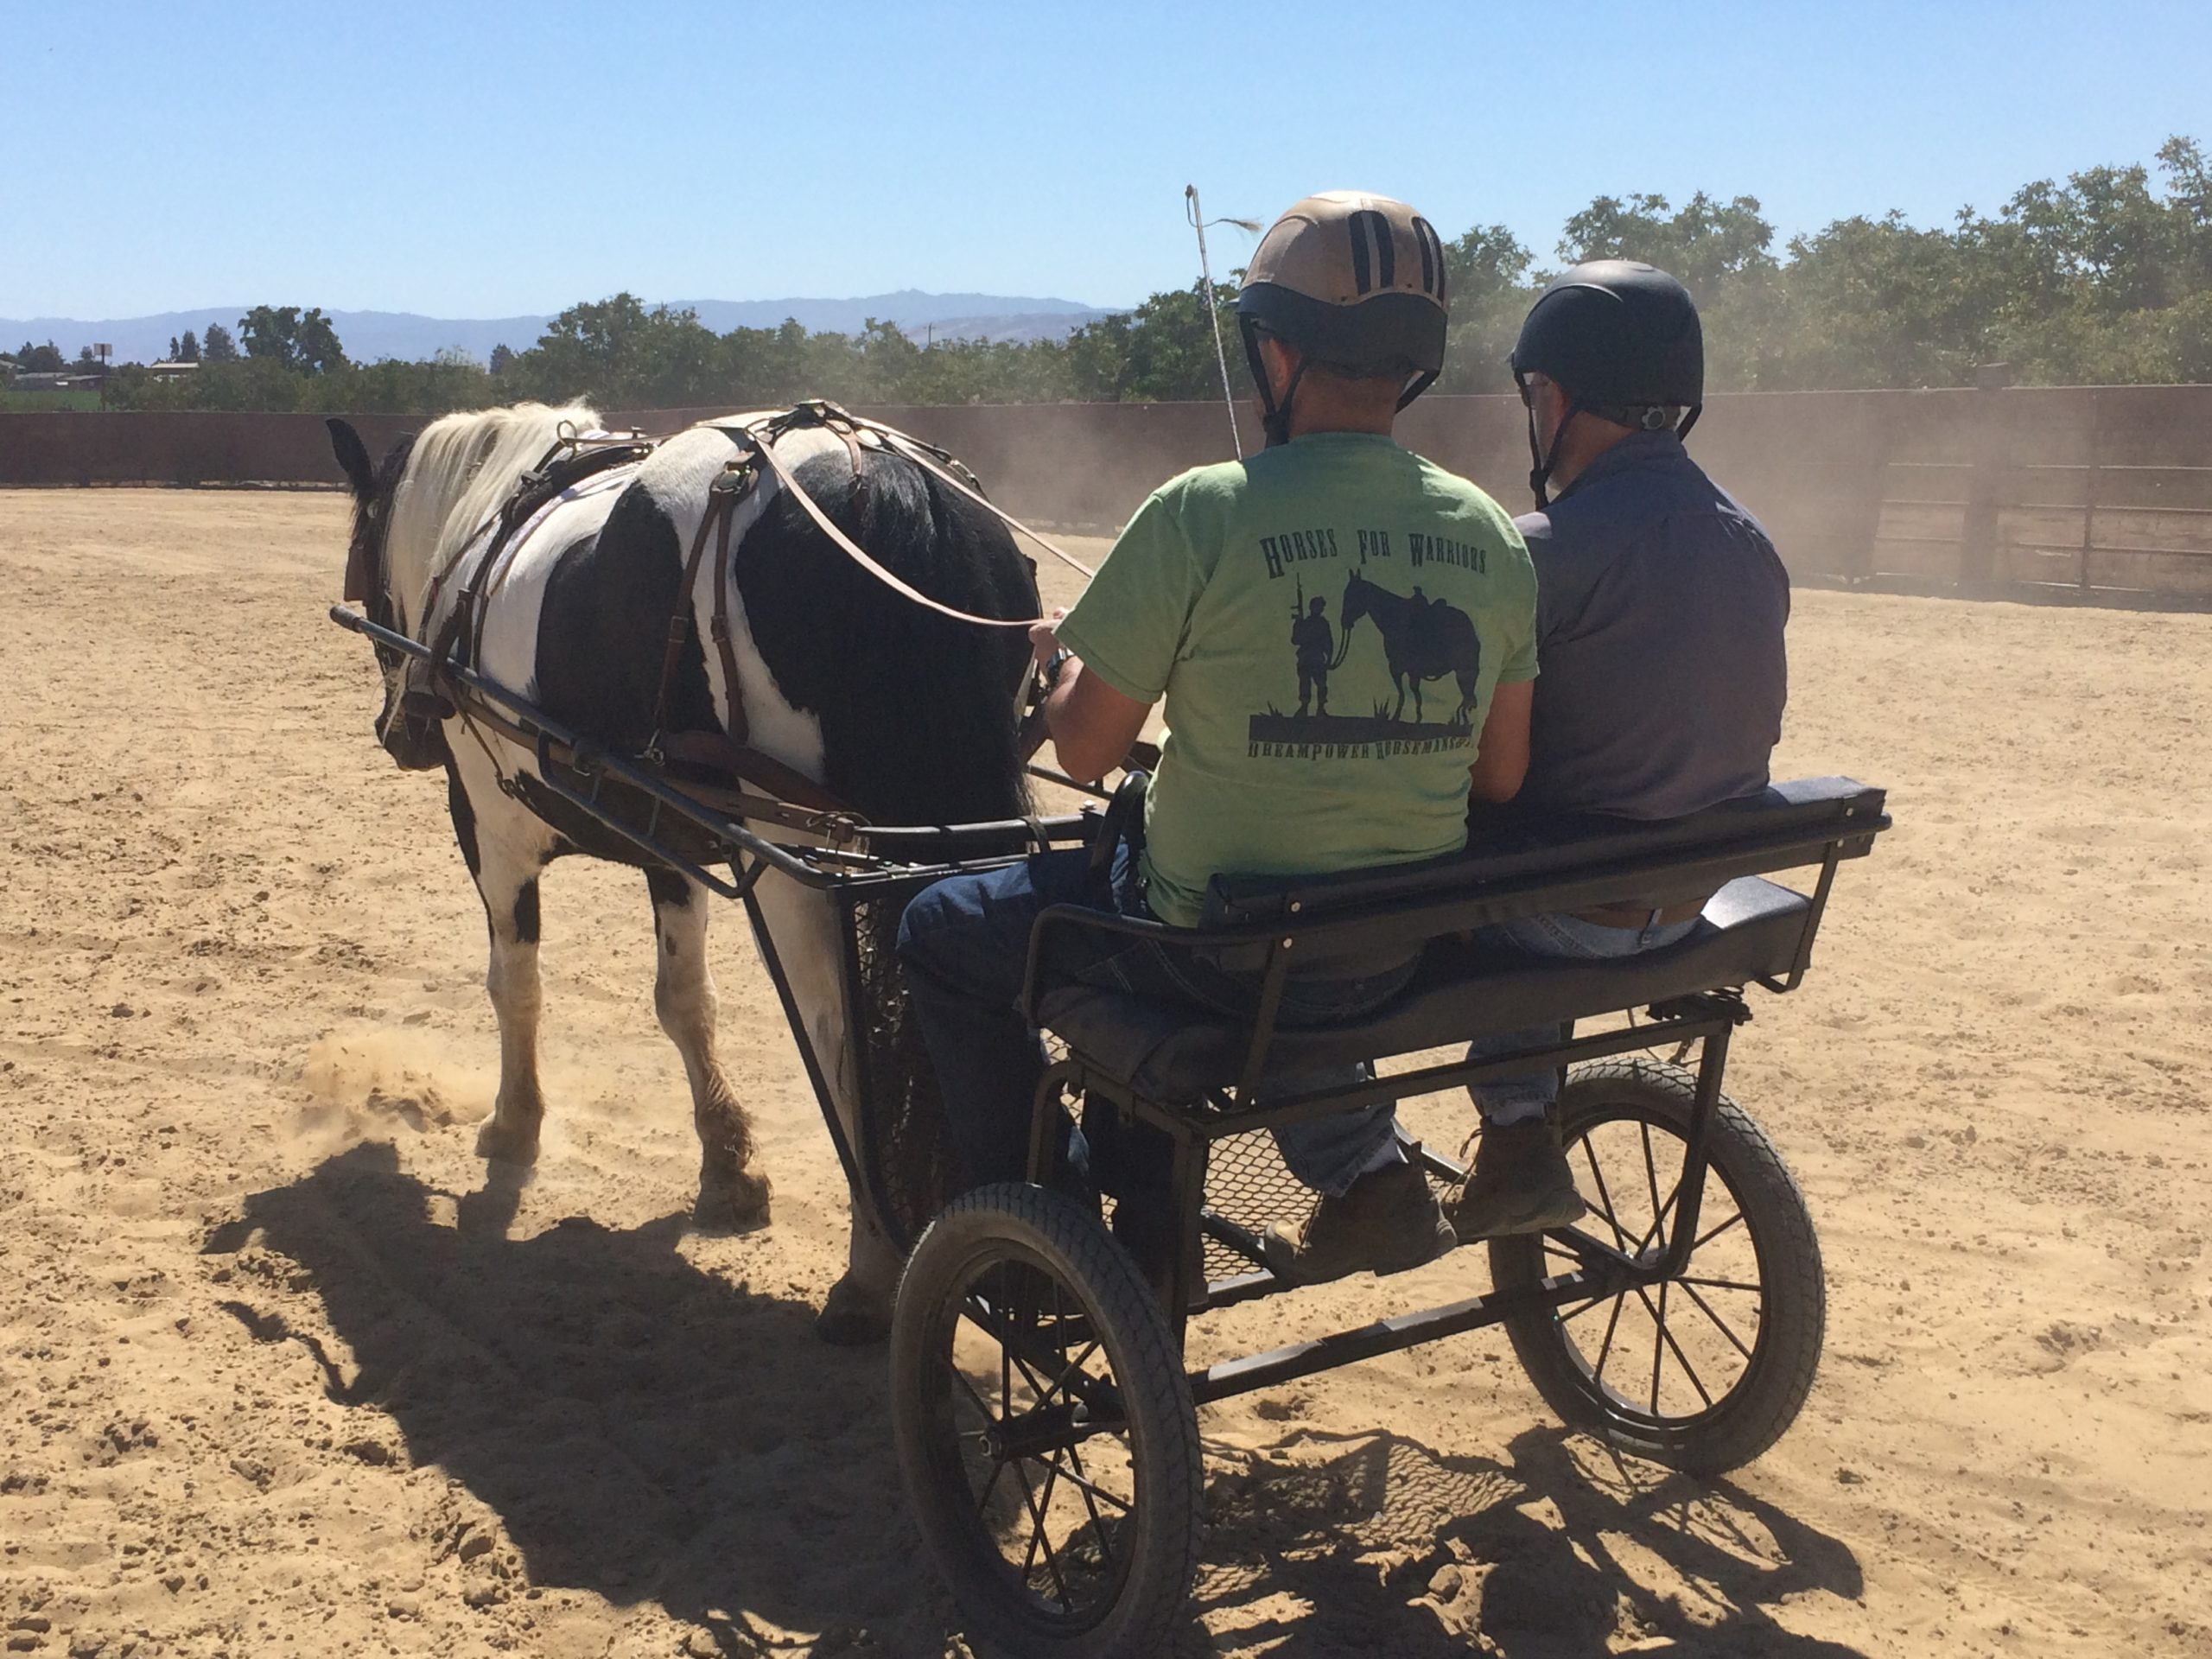 Photo of 2 men partaking in Therapeutic Driving - driving a horse drawn carriage